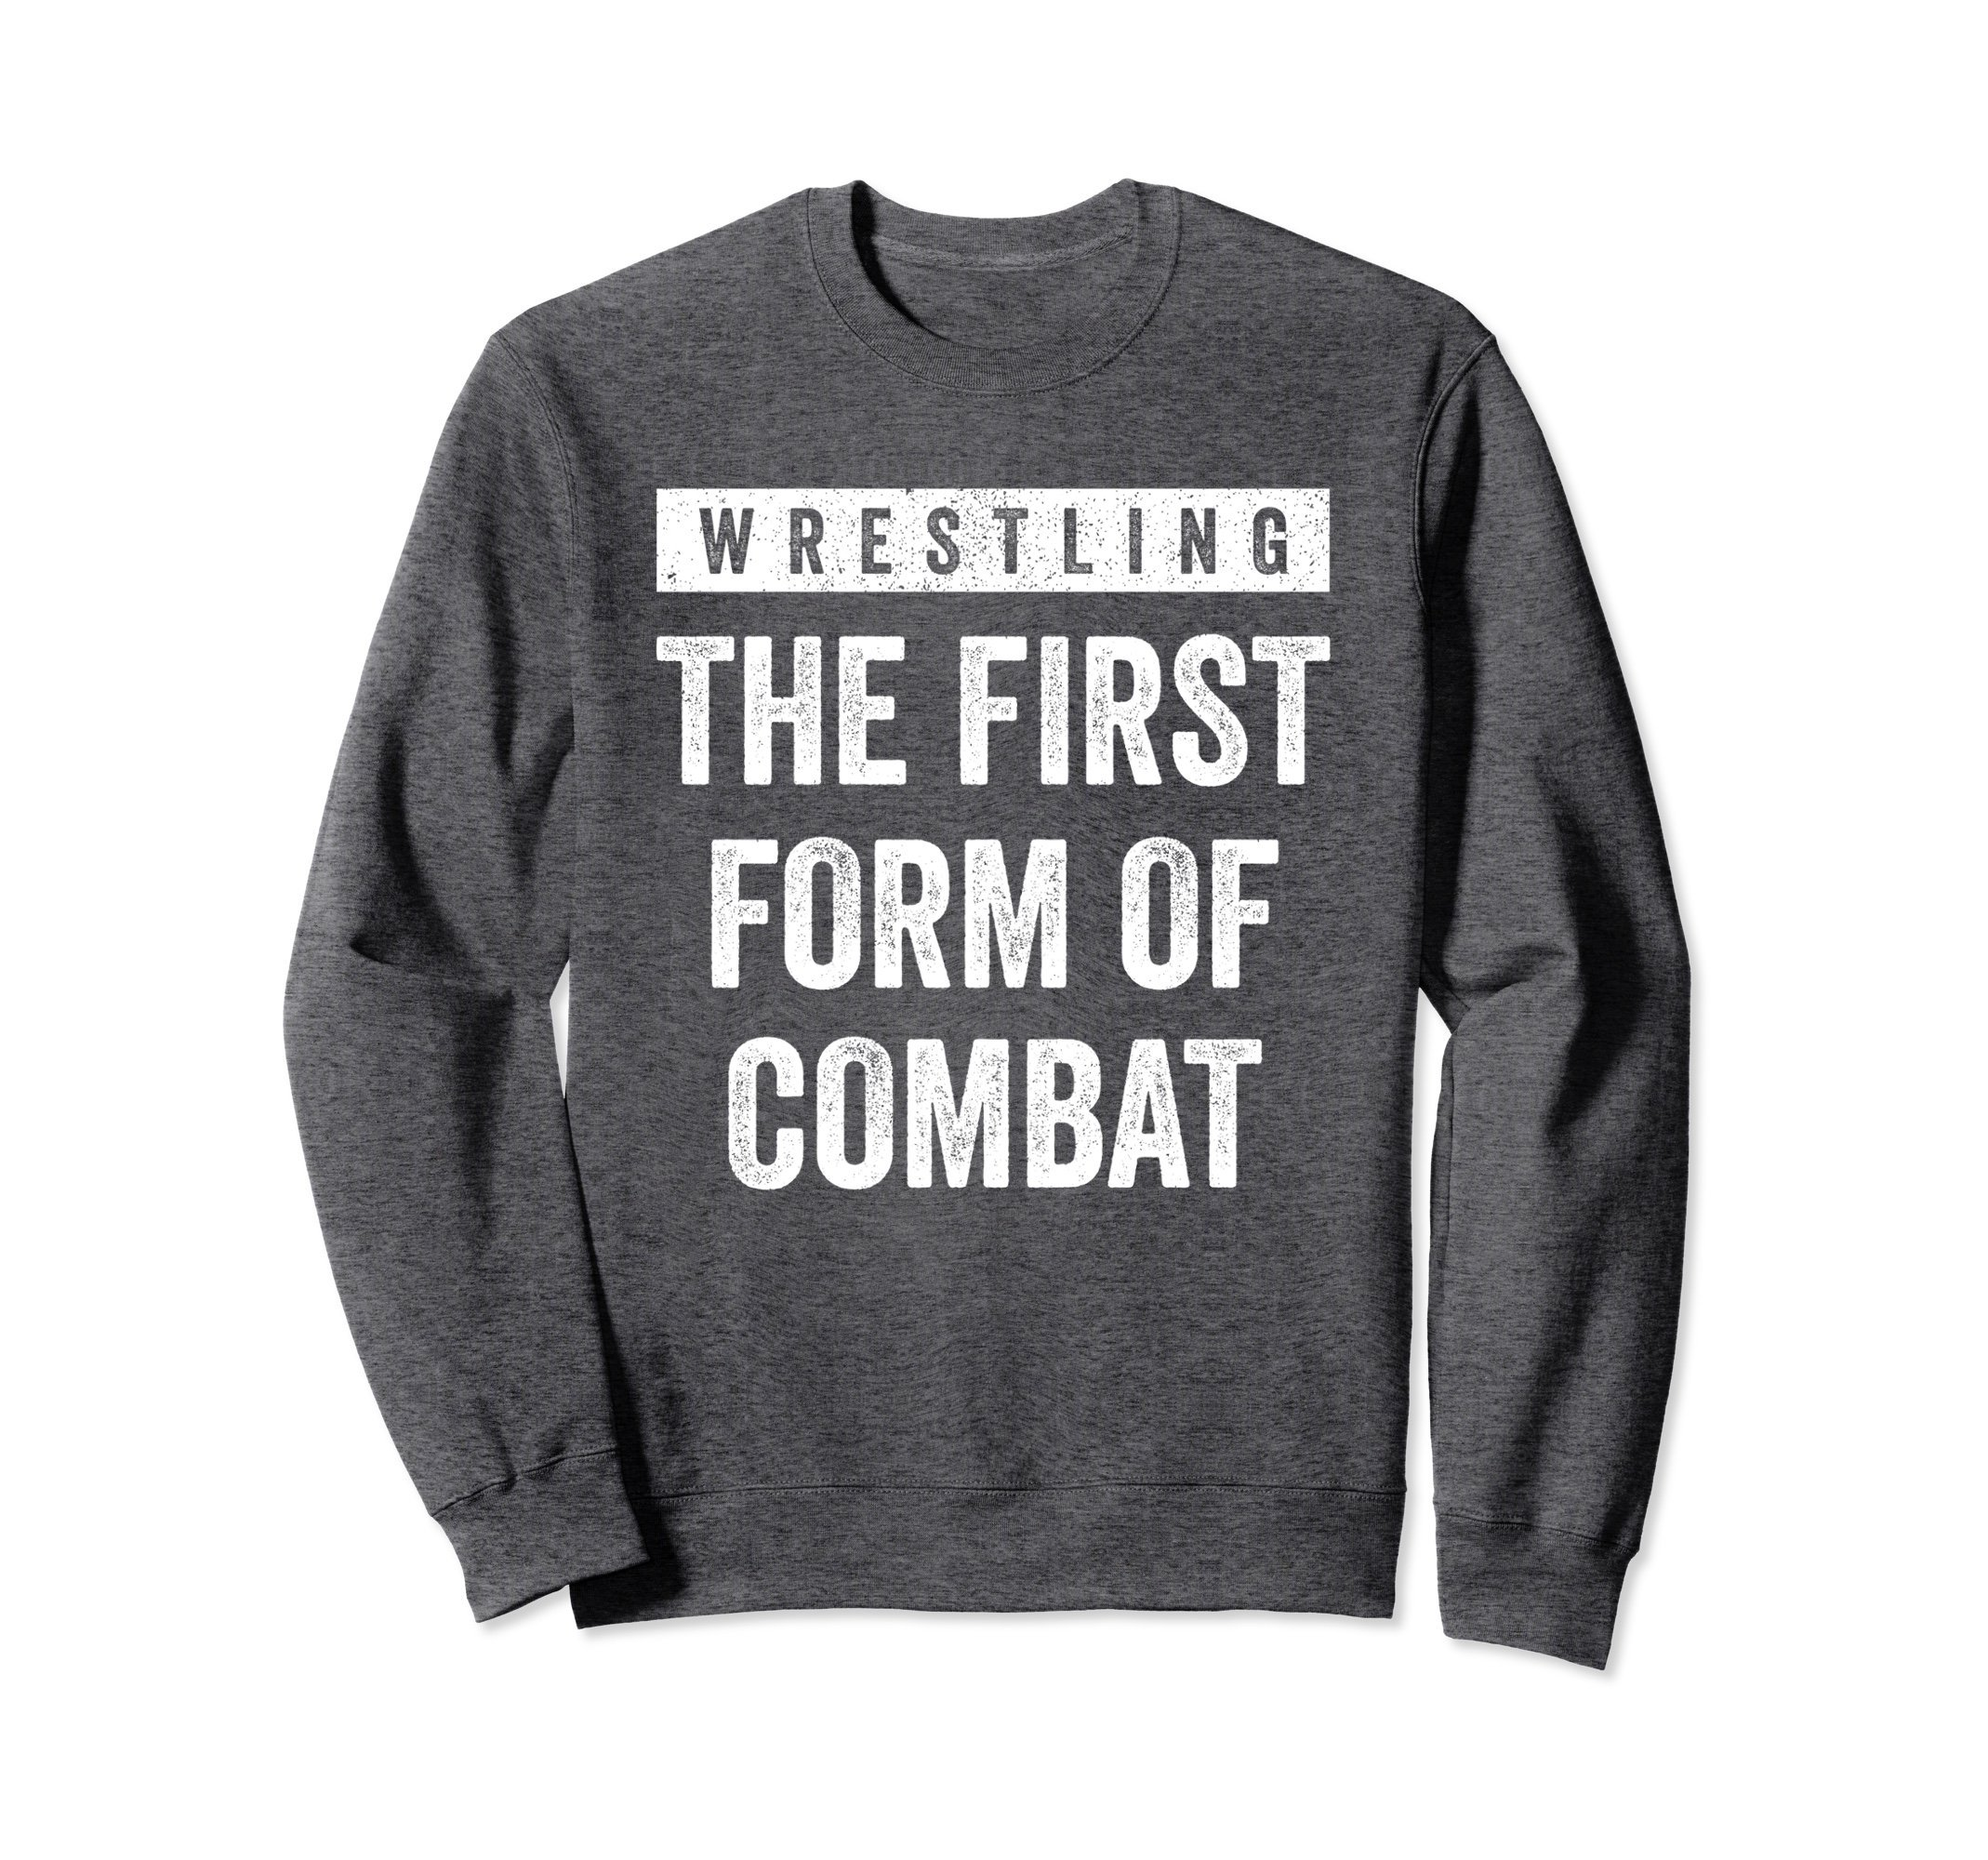 Unisex Wrestling First Form of Combat Sweatshirt for Wrestlers Large Dark Heather by Wrestling Shirts and Wrestling Shoes